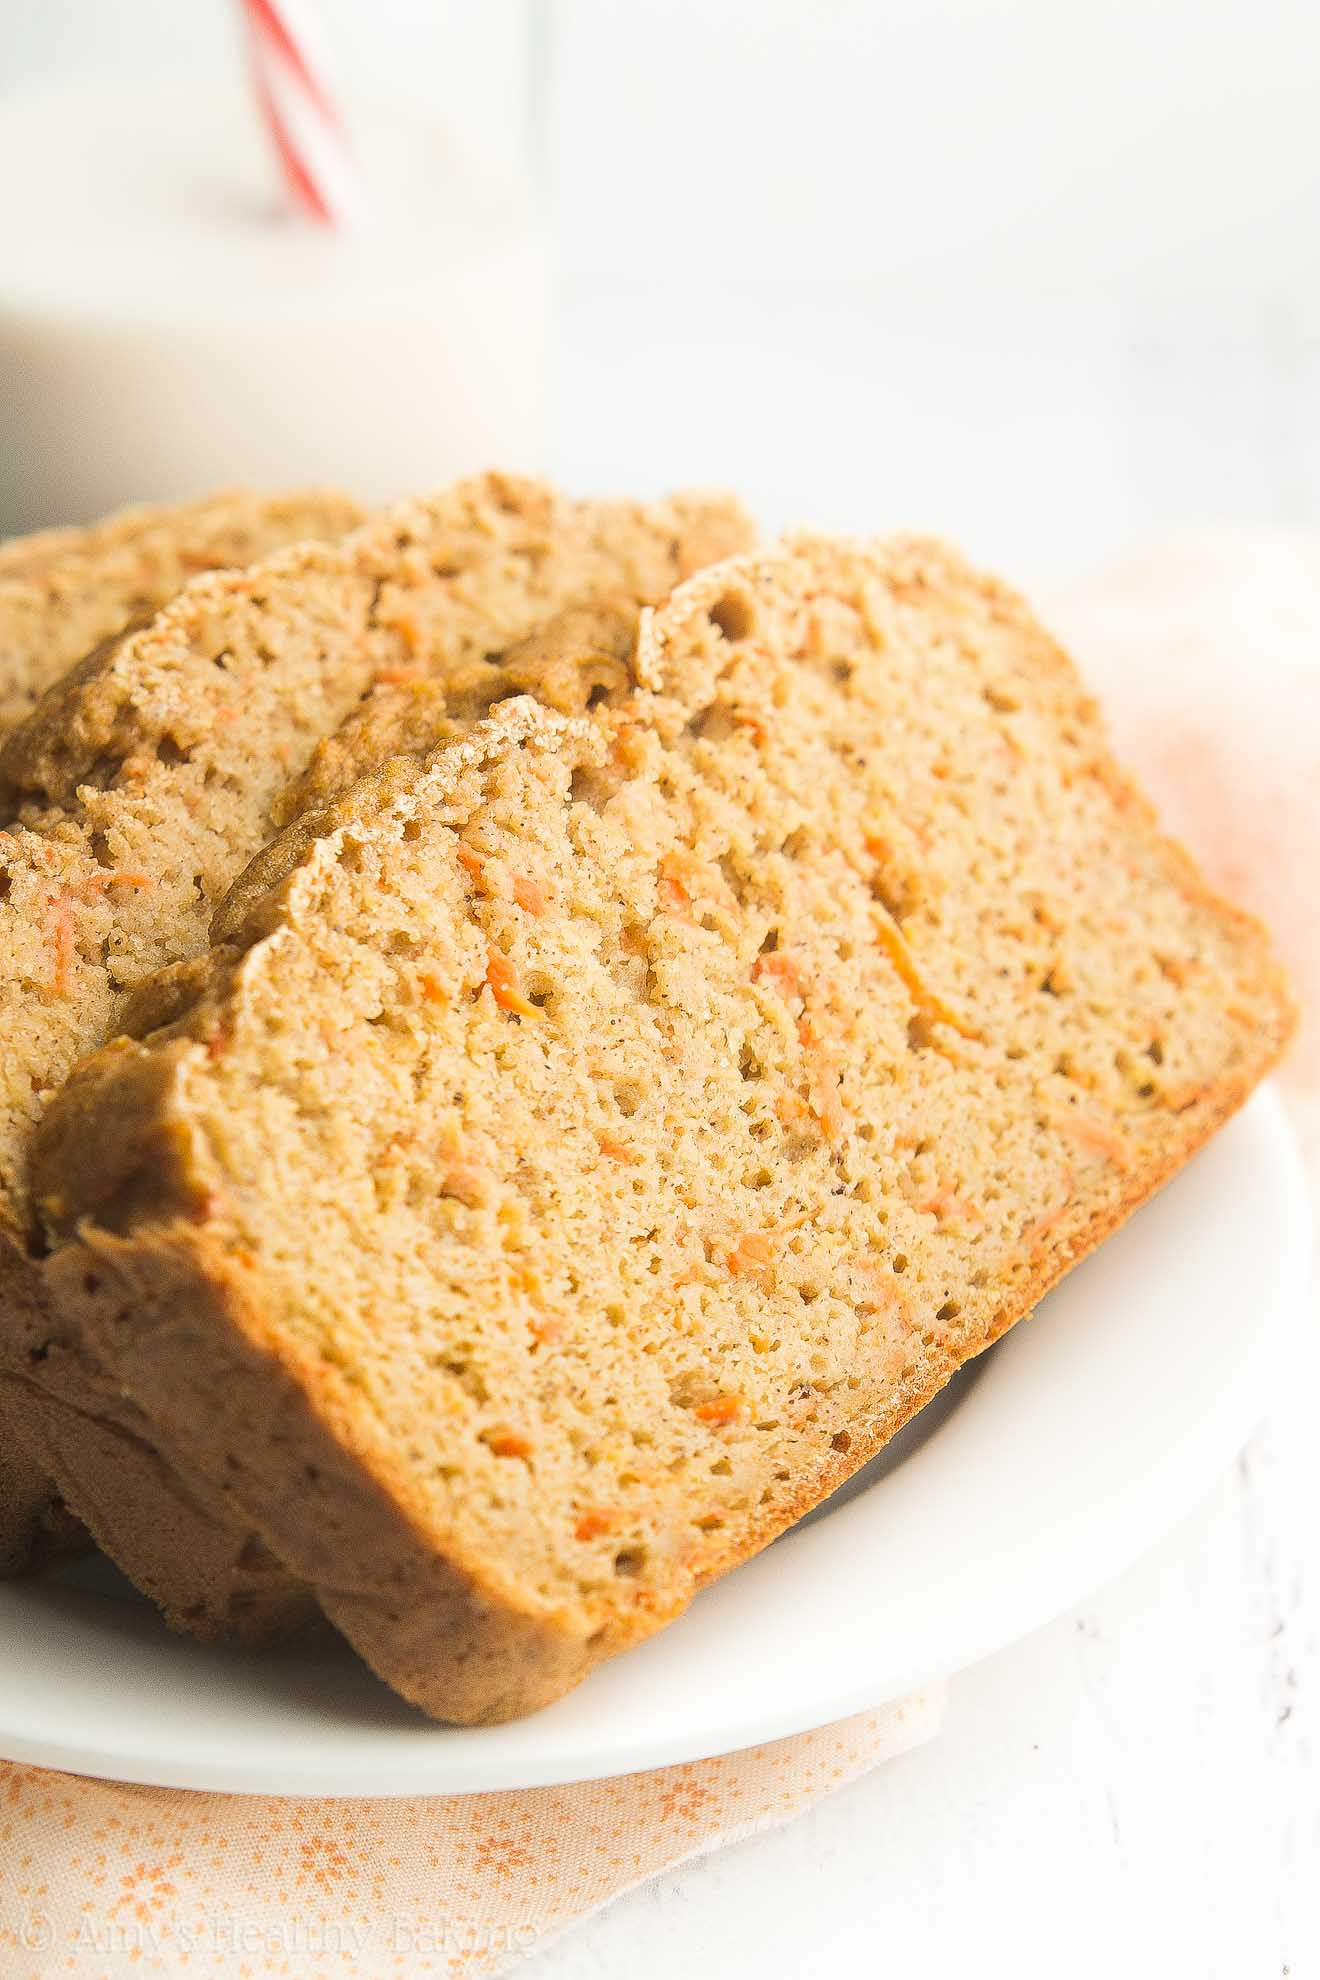 Healthy Greek Yogurt Carrot Cake Pound Cake -- sweet, cozy & only 134 calories! You NEED to try this easy recipe! It's the BEST pound cake I've ever had!